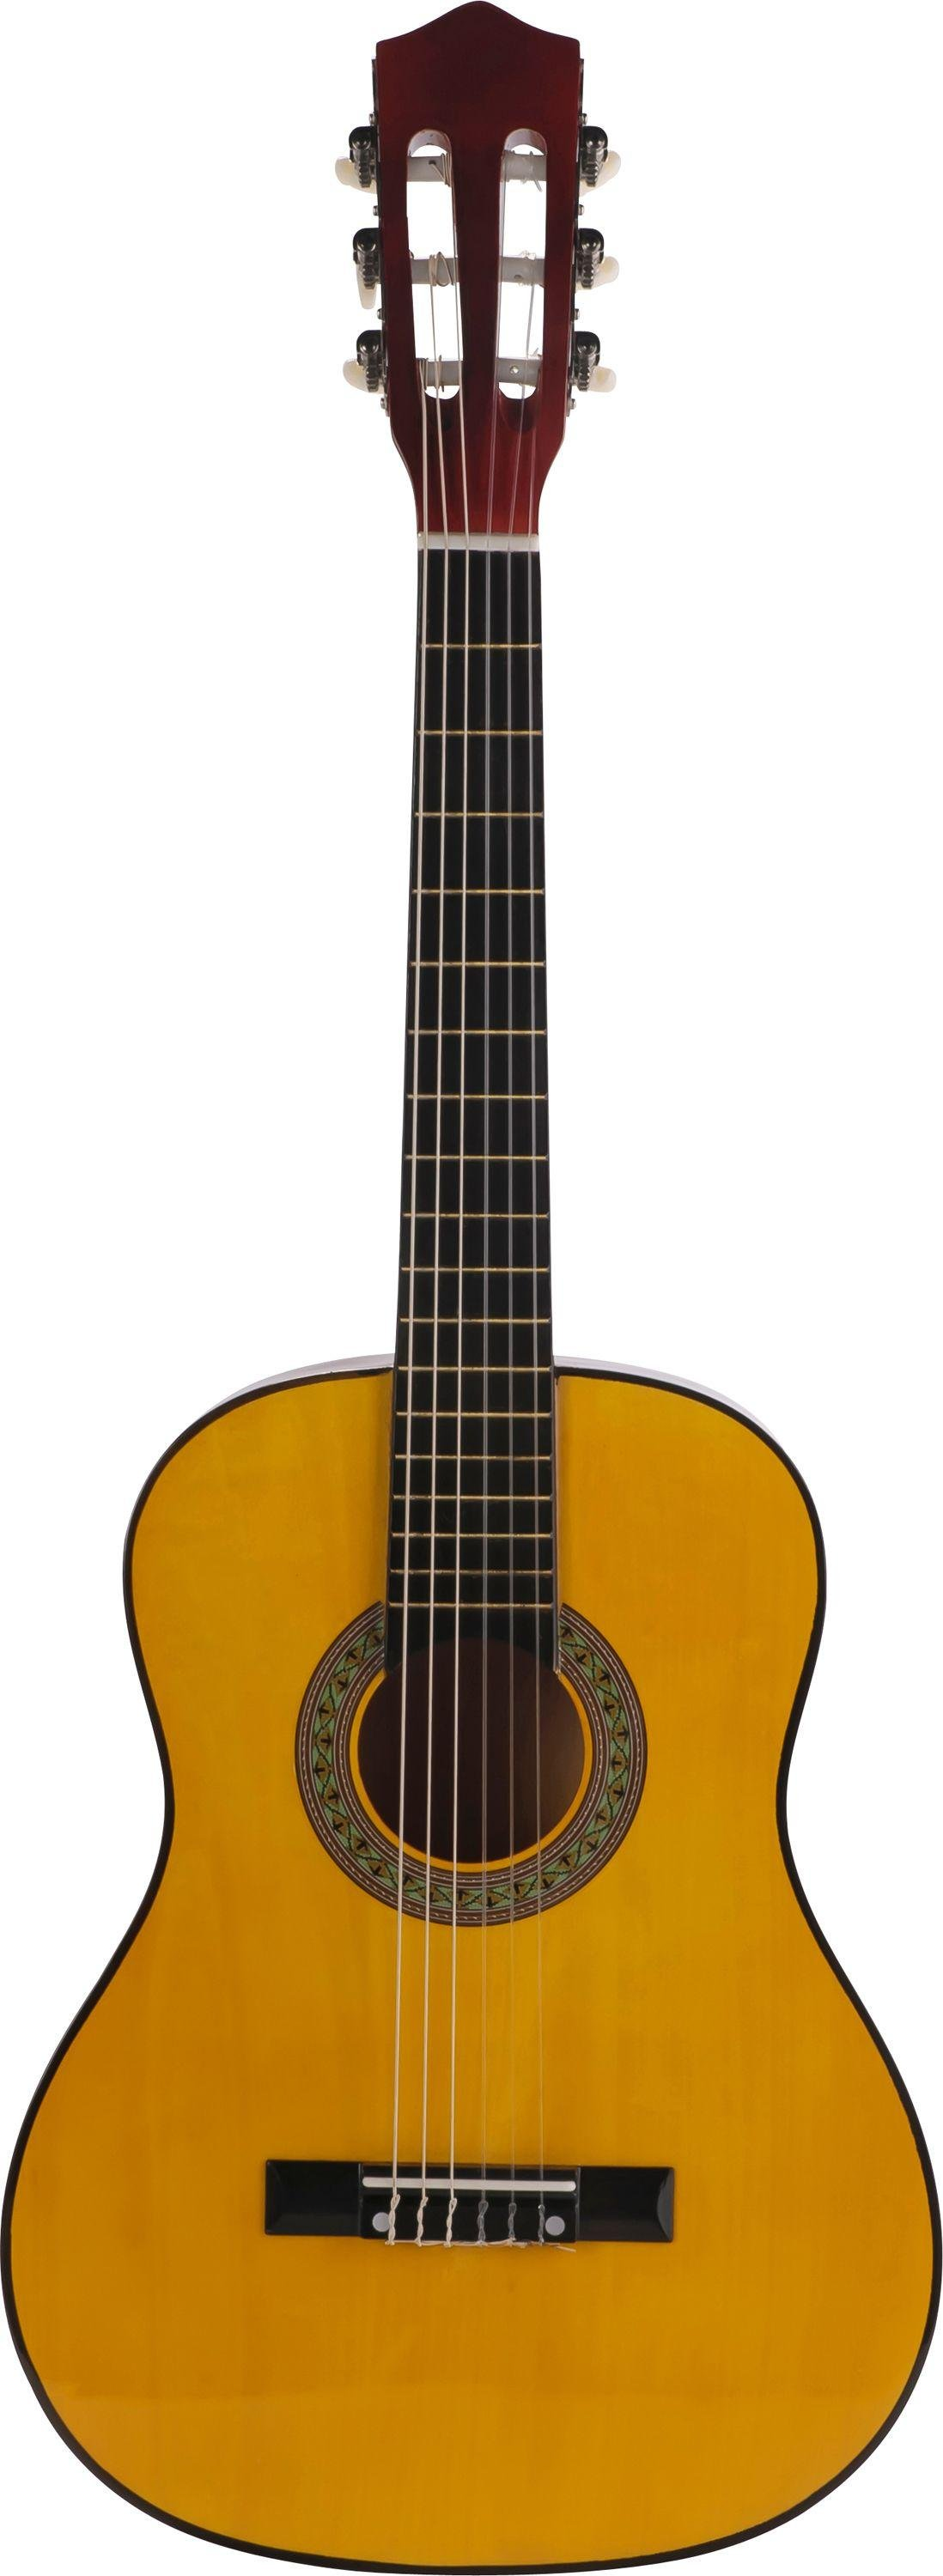 Music Alley 1/2 Size Classical Acoustic Guitar from Music Alley